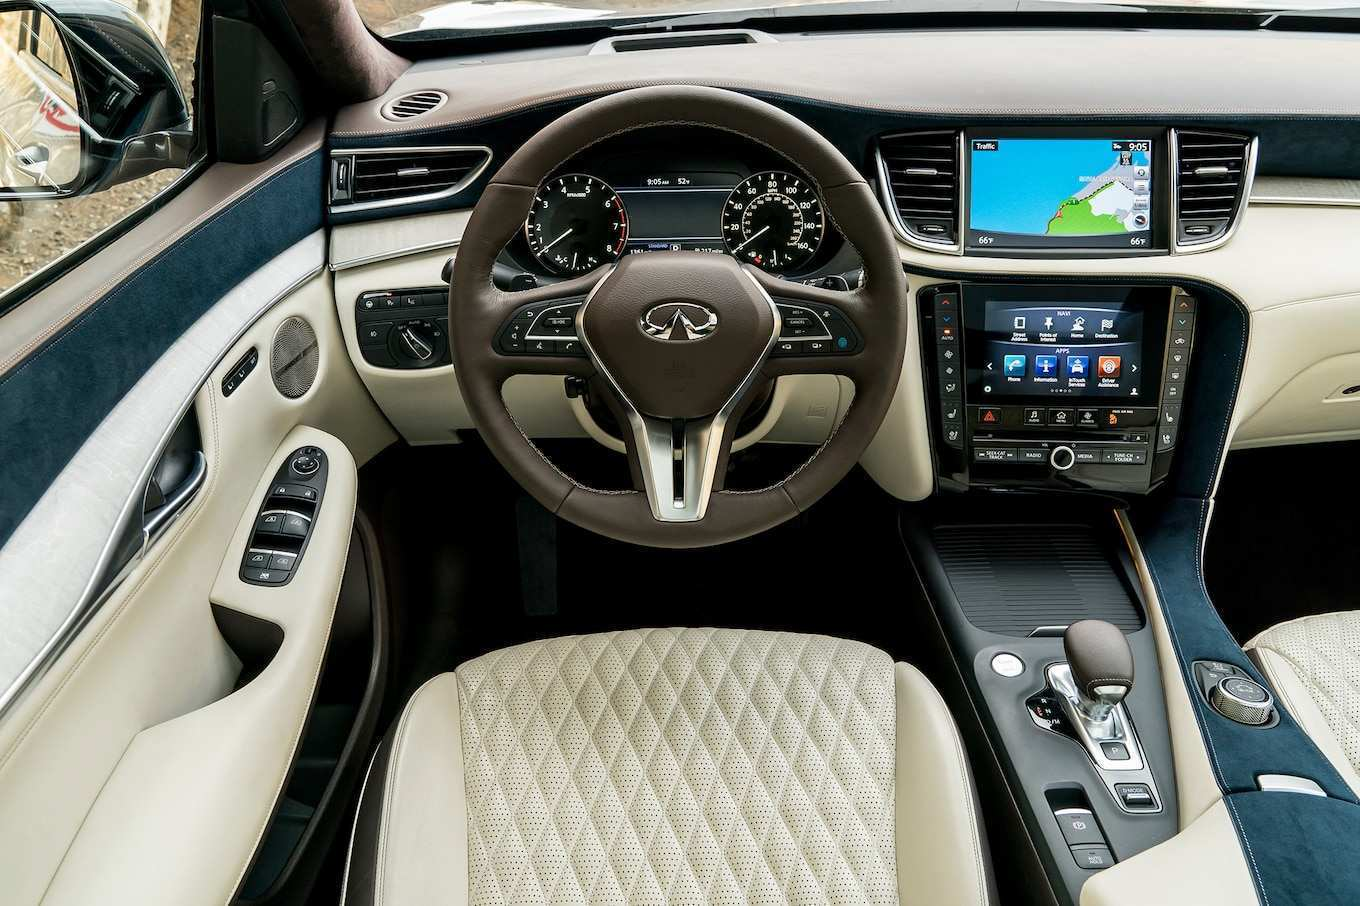 82 Great 2019 Infiniti Qx50 Luxe Interior Redesign and Concept with 2019 Infiniti Qx50 Luxe Interior